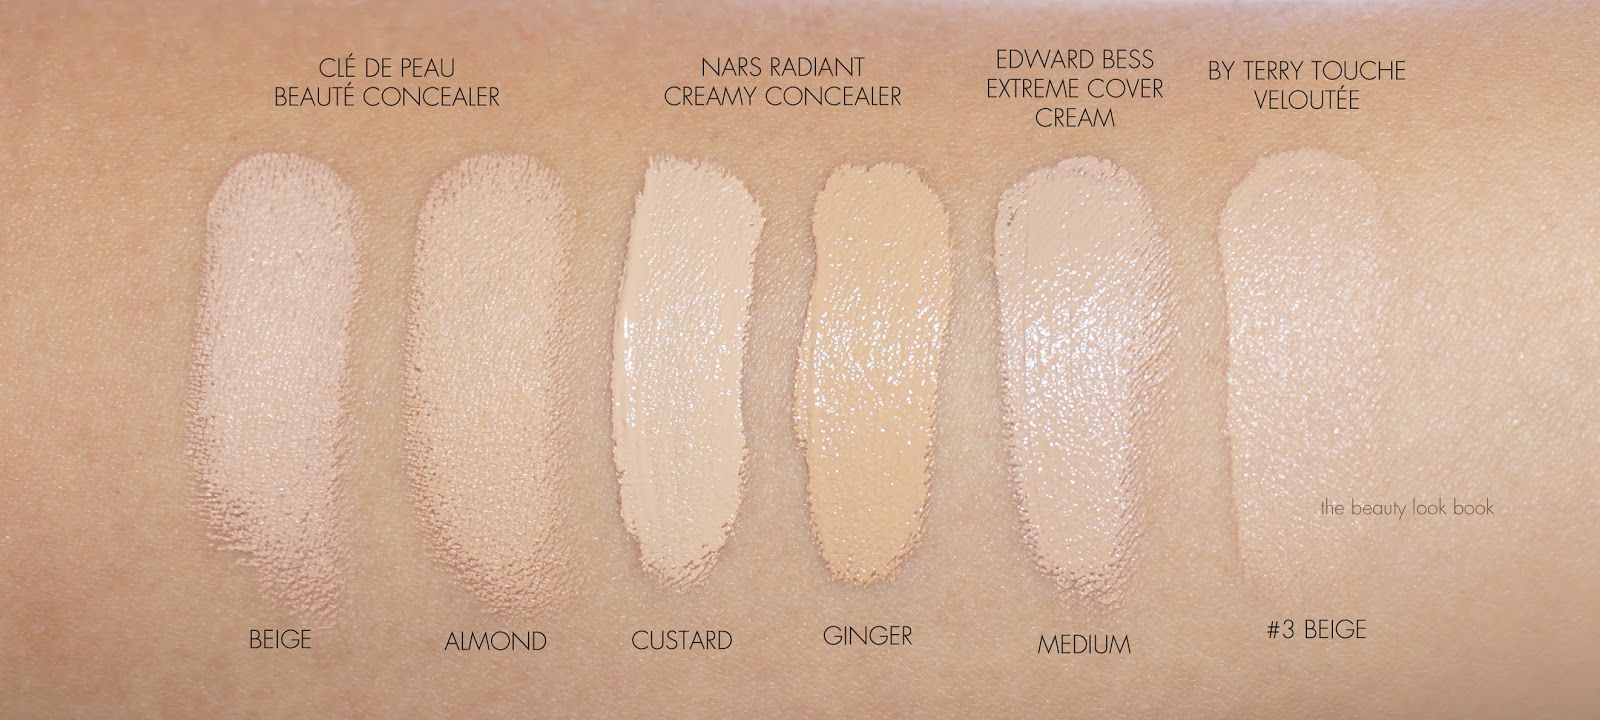 Radiant Creamy Concealer by NARS #9